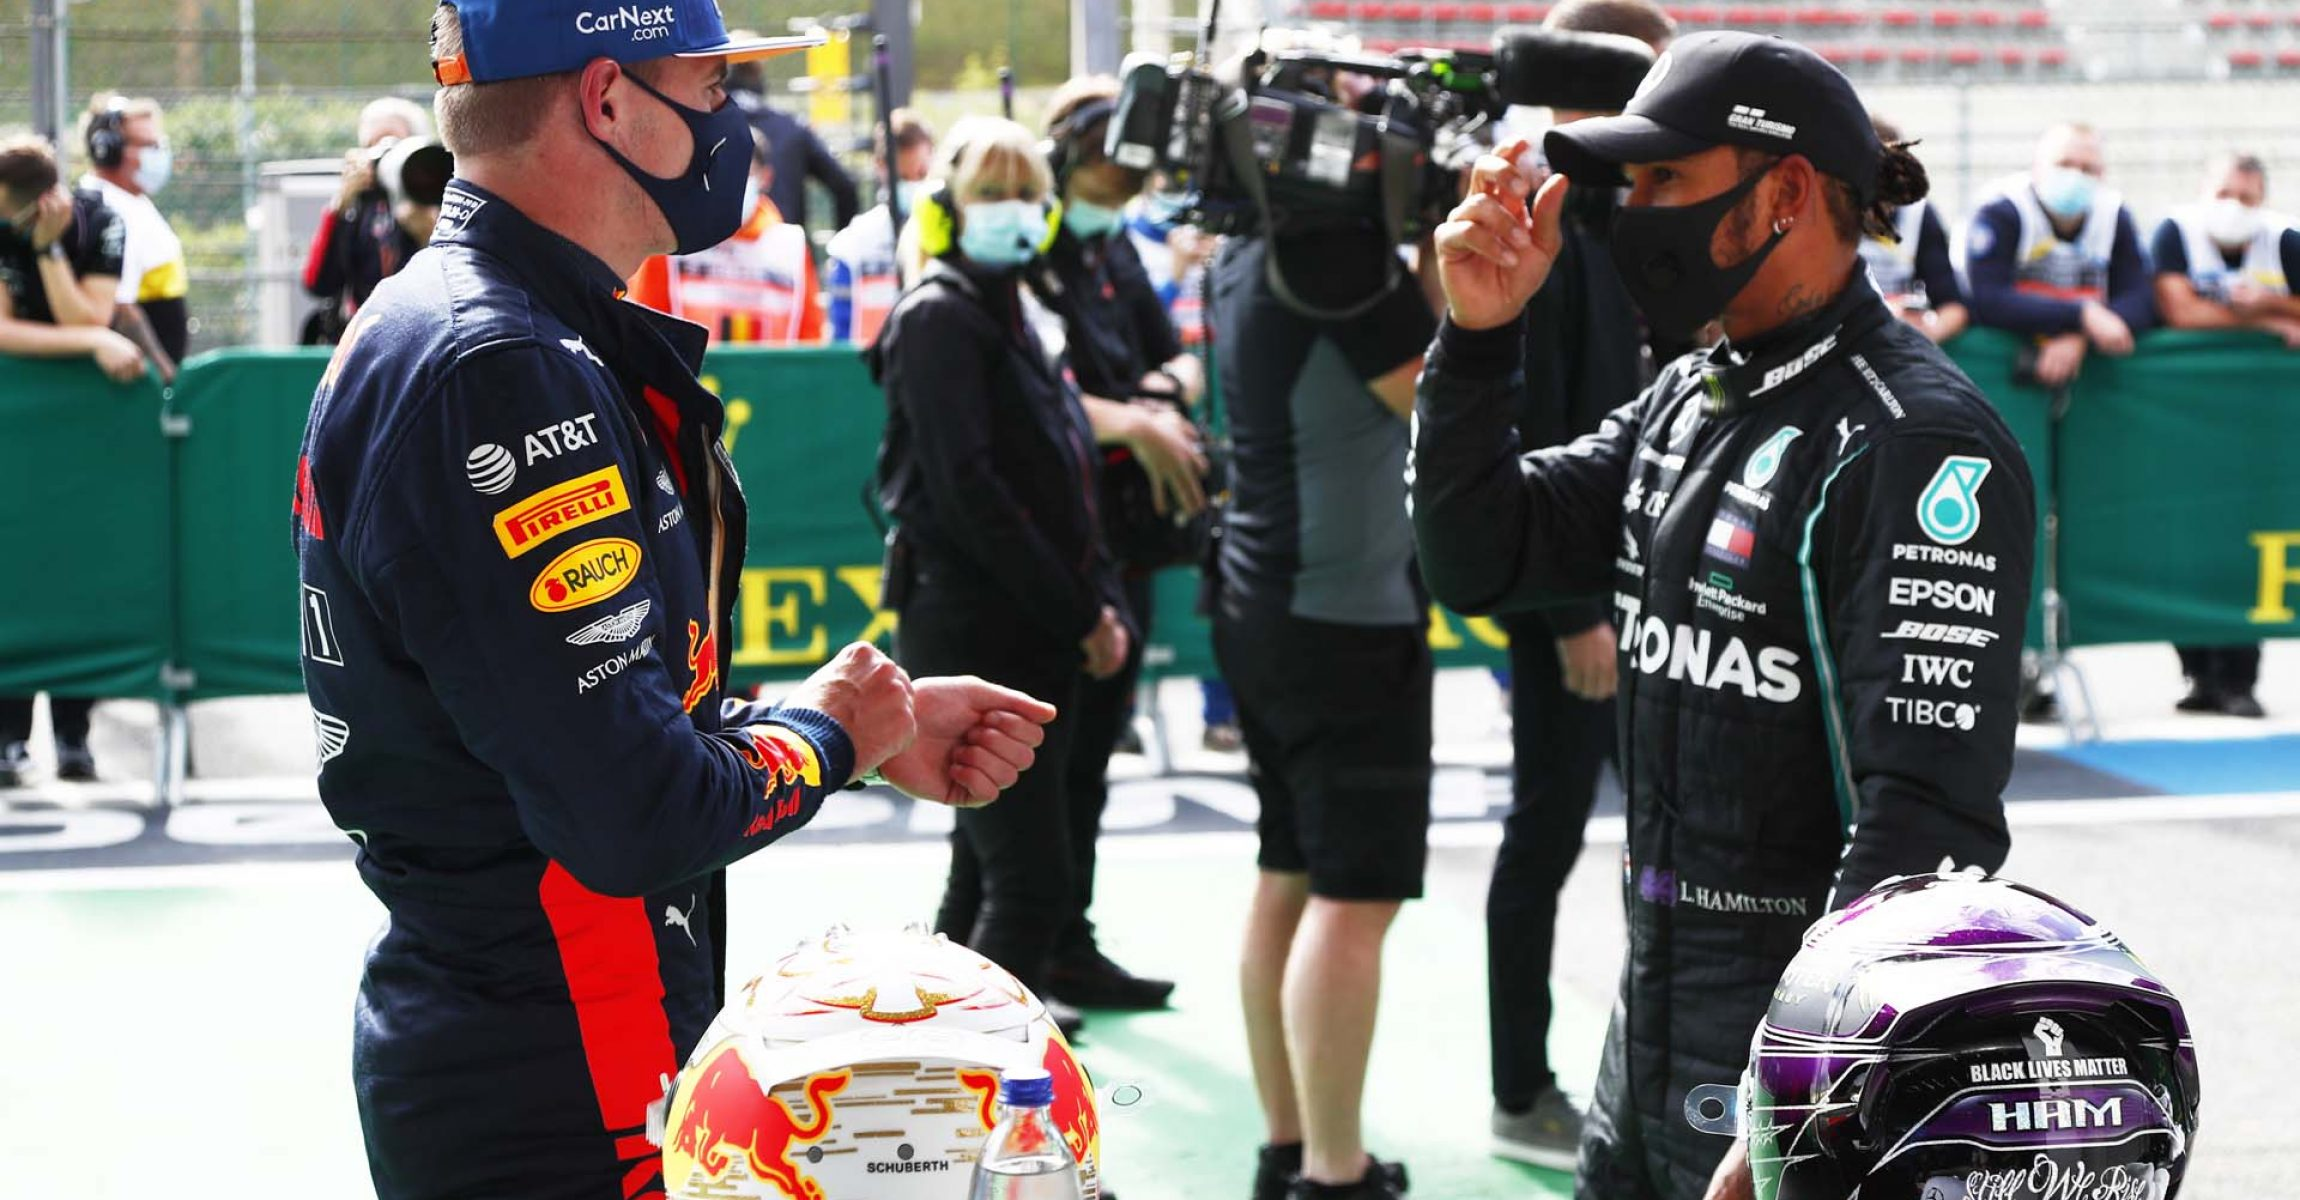 SPA, BELGIUM - AUGUST 29: Pole position qualifier Lewis Hamilton of Great Britain and Mercedes GP and third place qualifier Max Verstappen of Netherlands and Red Bull Racing talk in parc ferme during qualifying for the F1 Grand Prix of Belgium at Circuit de Spa-Francorchamps on August 29, 2020 in Spa, Belgium. (Photo by Francois Lenoir/Pool via Getty Images)